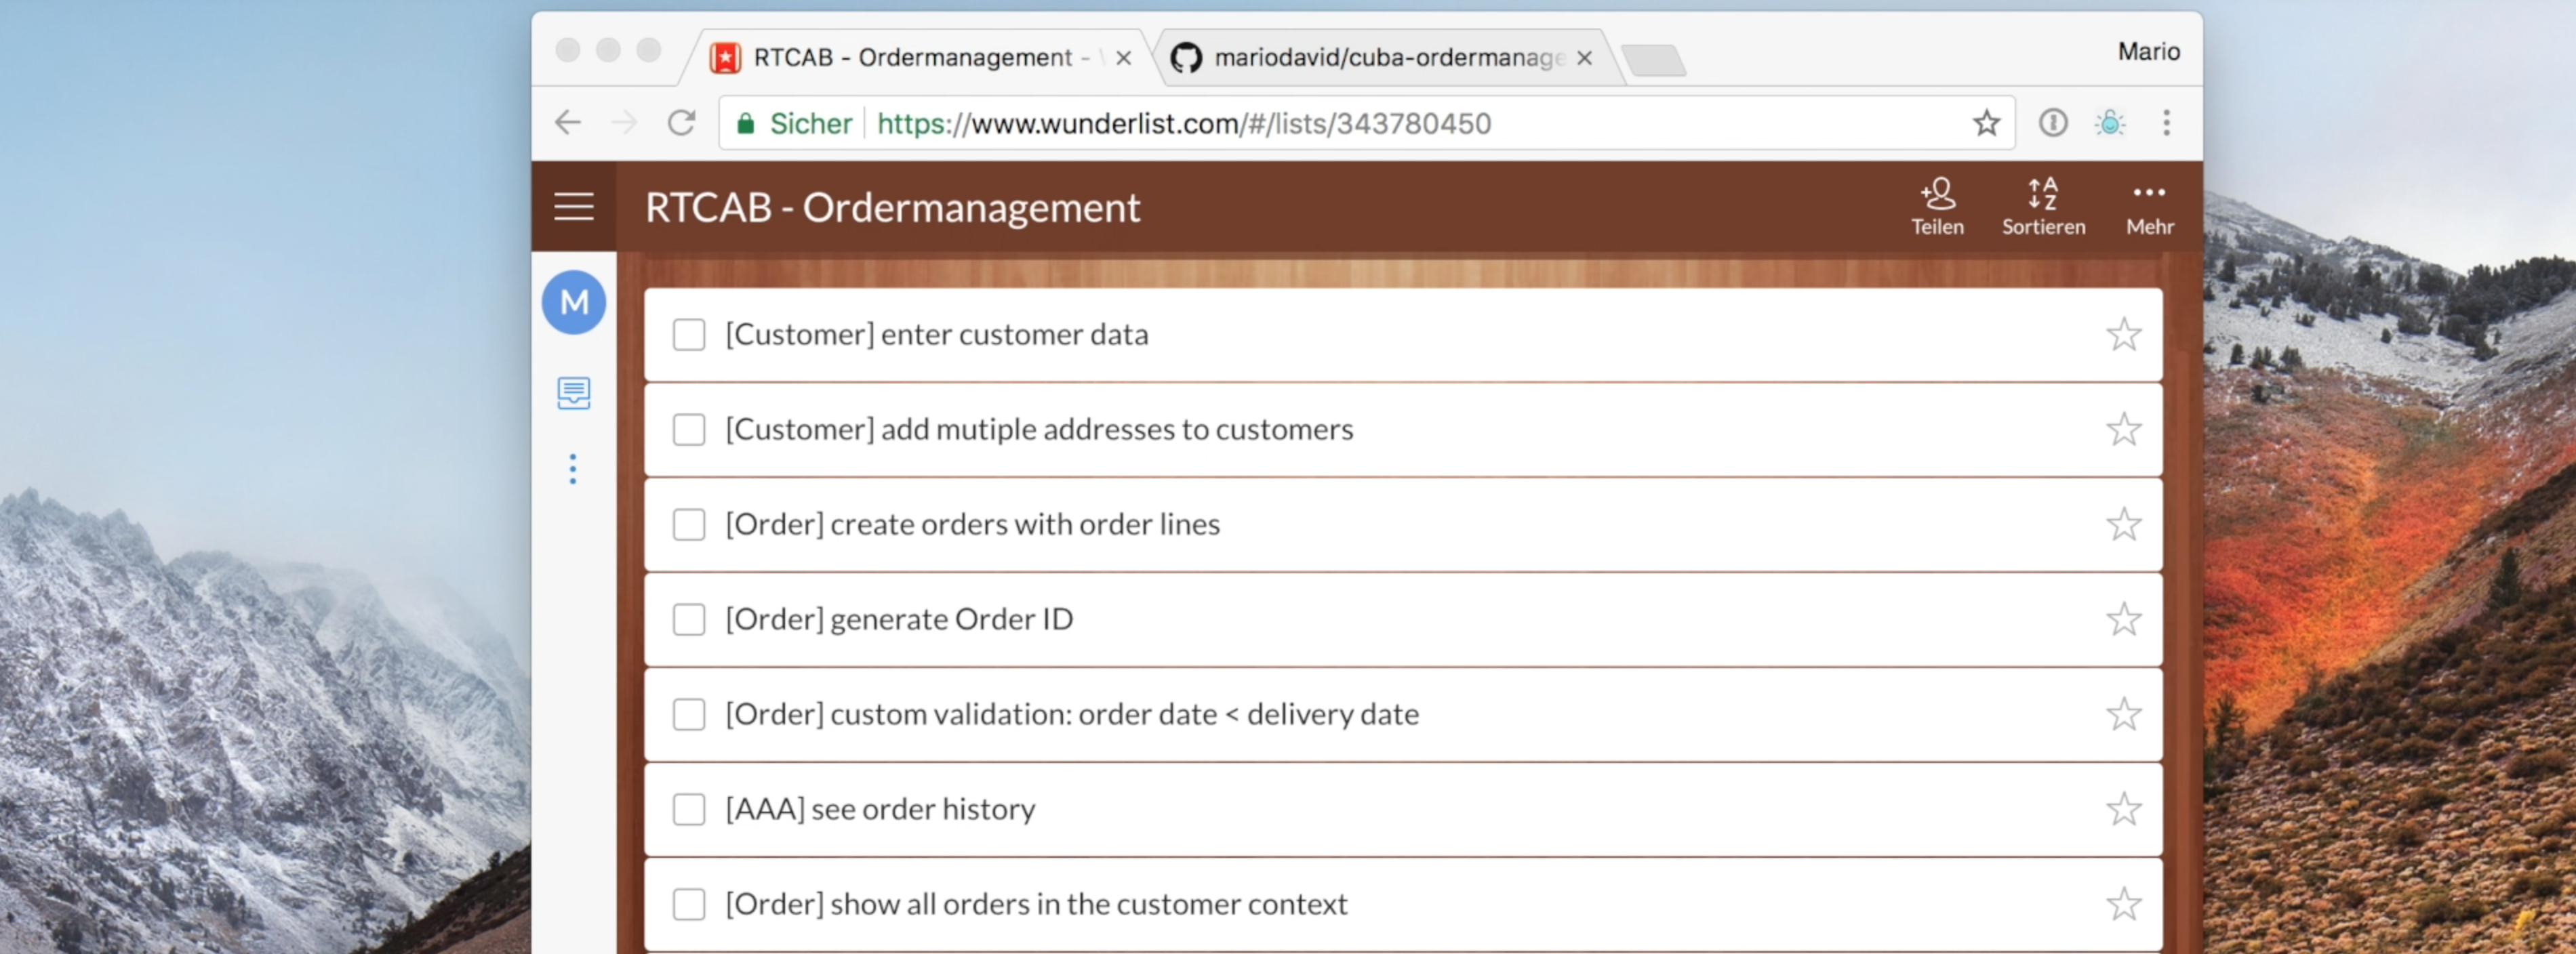 Create an ordermanagement app with CUBA